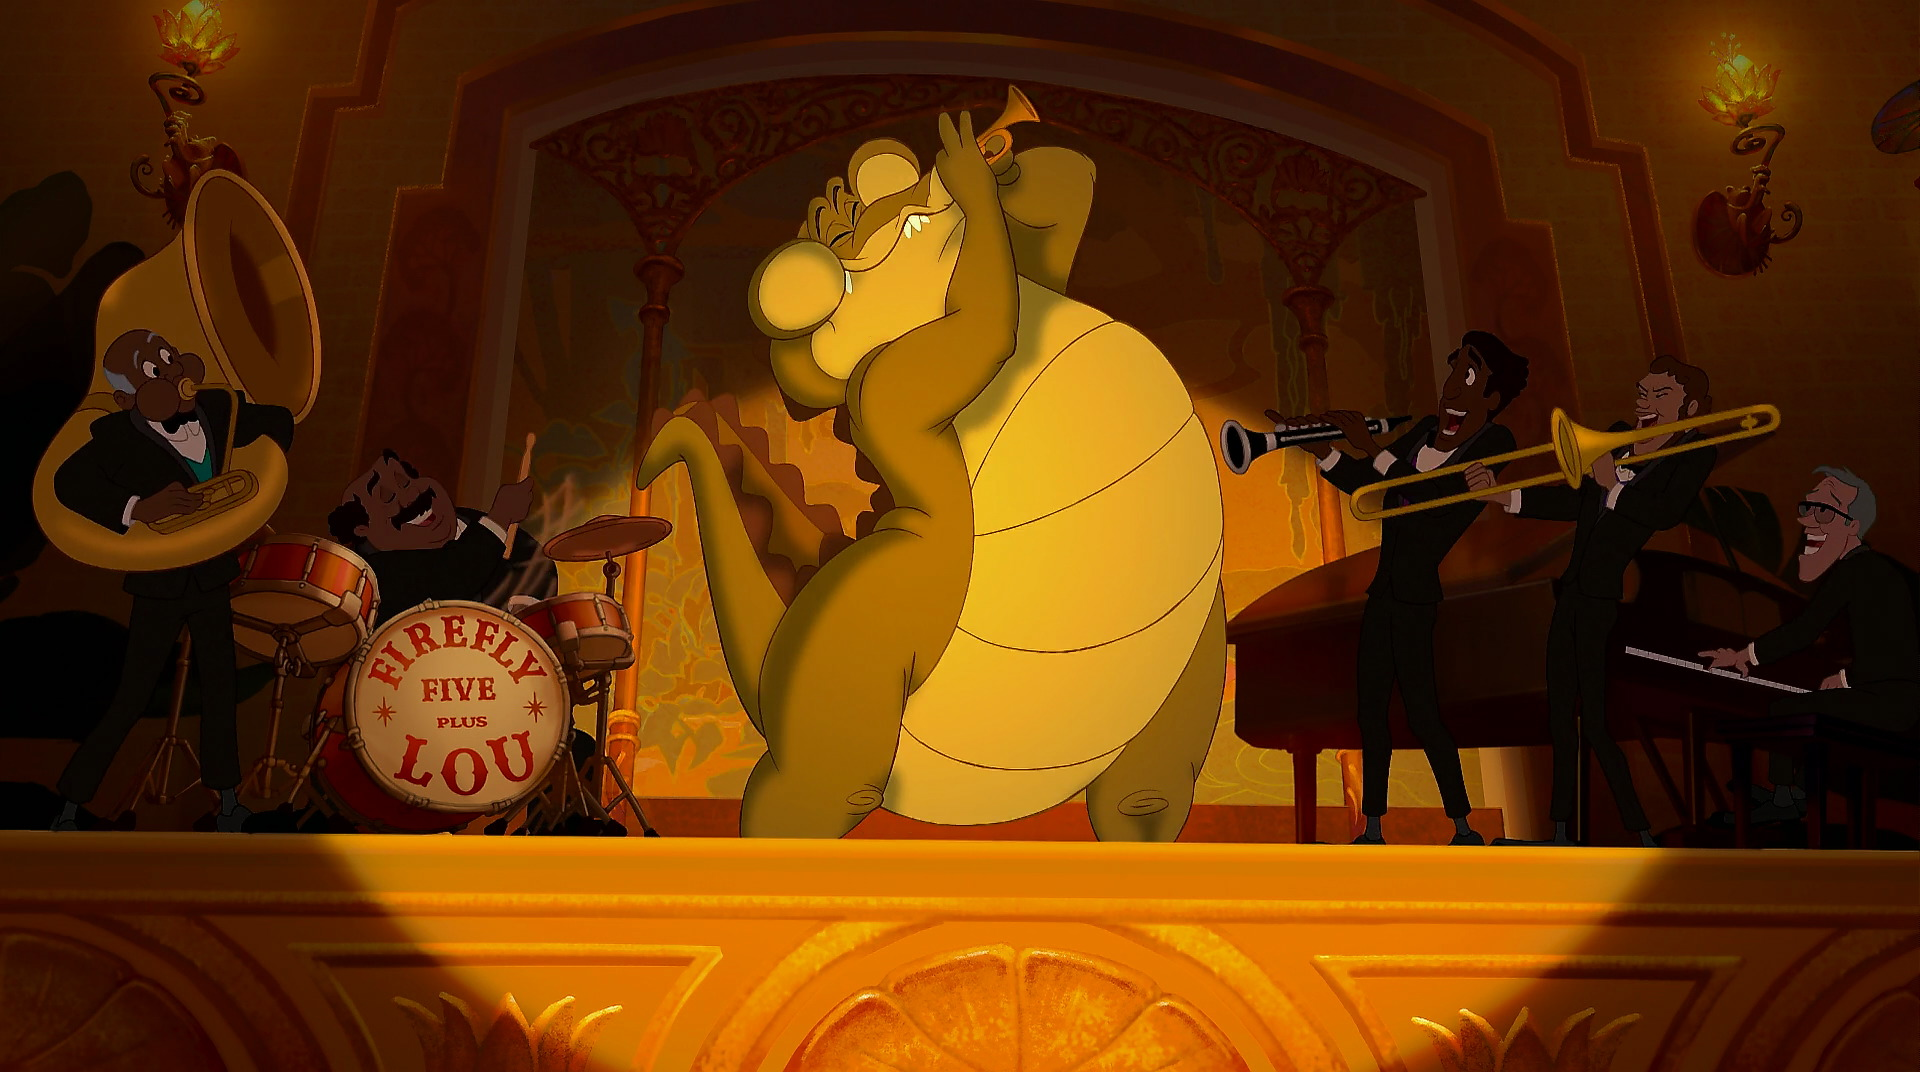 Princess and the frog louis - photo#29